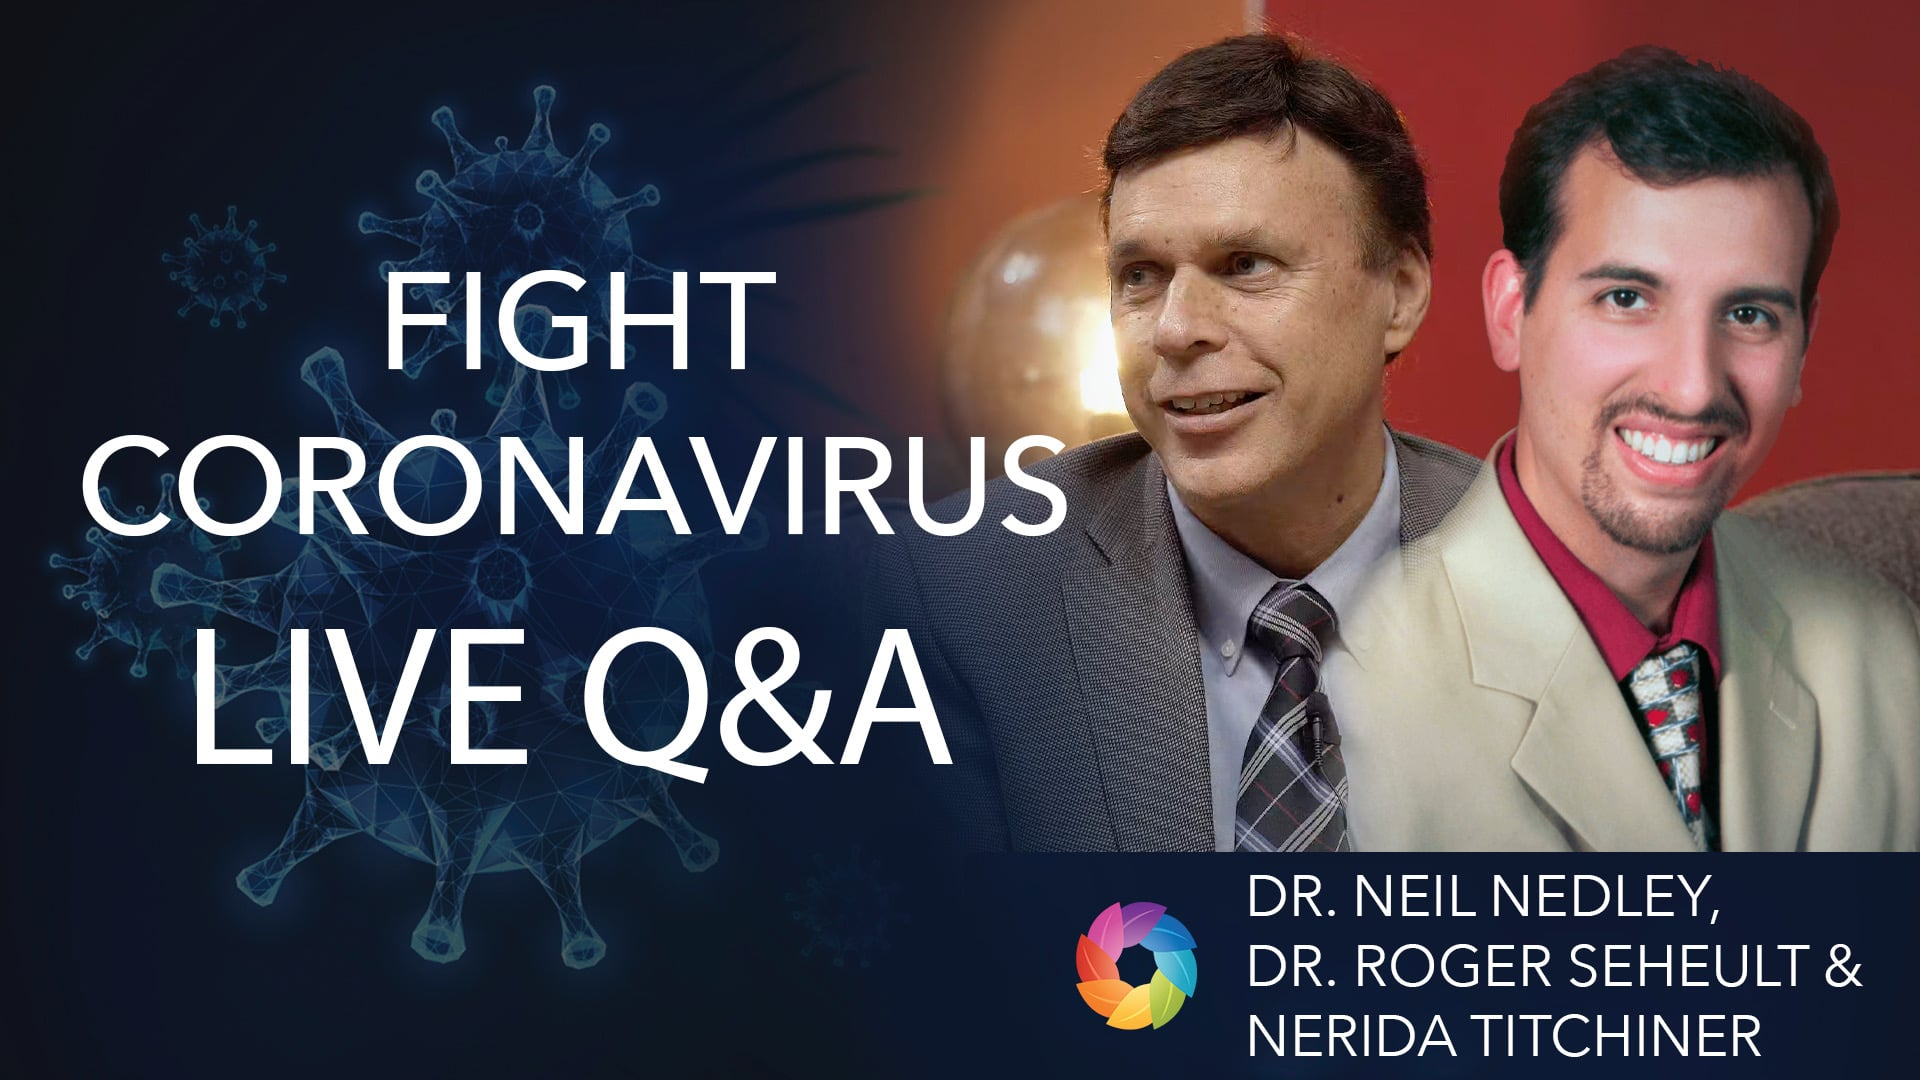 Fight Coronavirus Q&A – Dr Neil Nedley, Dr Roger Seheult and Dr Nerida Titchiner